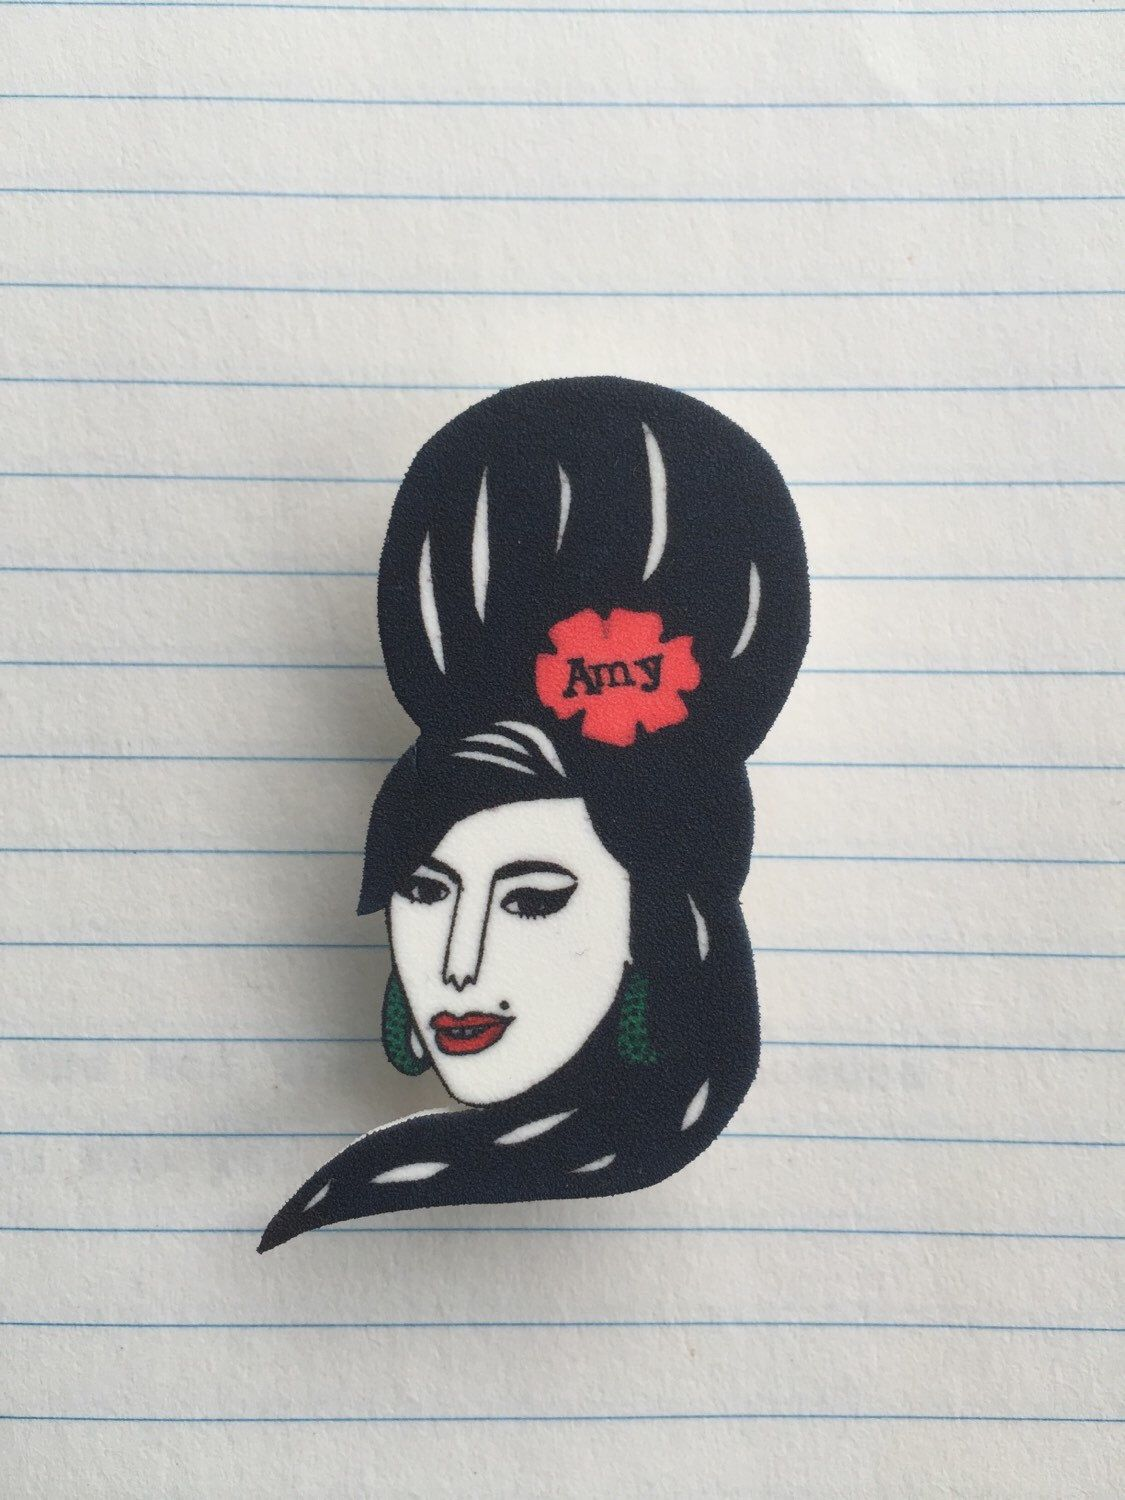 Amy Winehouse brooch in shrink-plastic by DorkDisco on Etsy https://www.etsy.com/listing/210491488/amy-winehouse-brooch-in-shrink-plastic                                                                                                                                                     Más